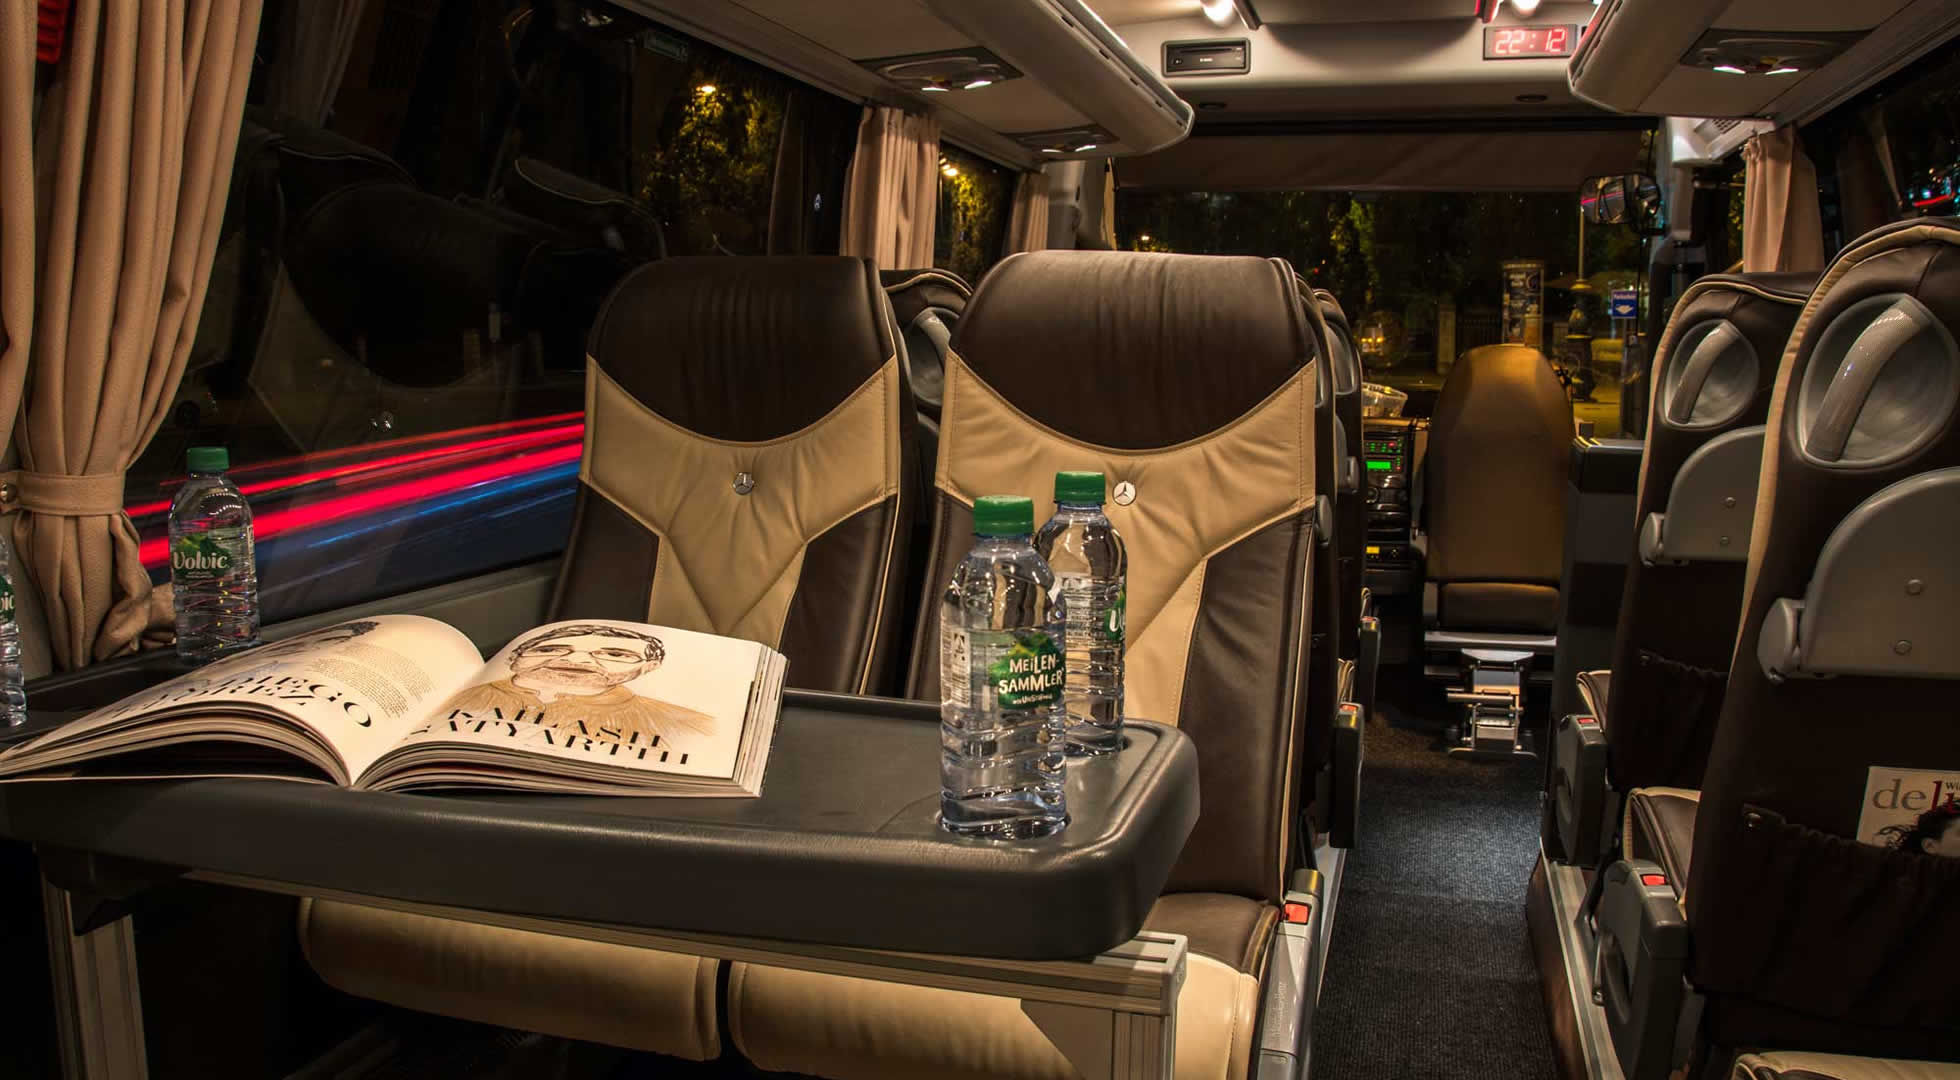 Travel in Luxury with STM Bus & Limousine Service Team